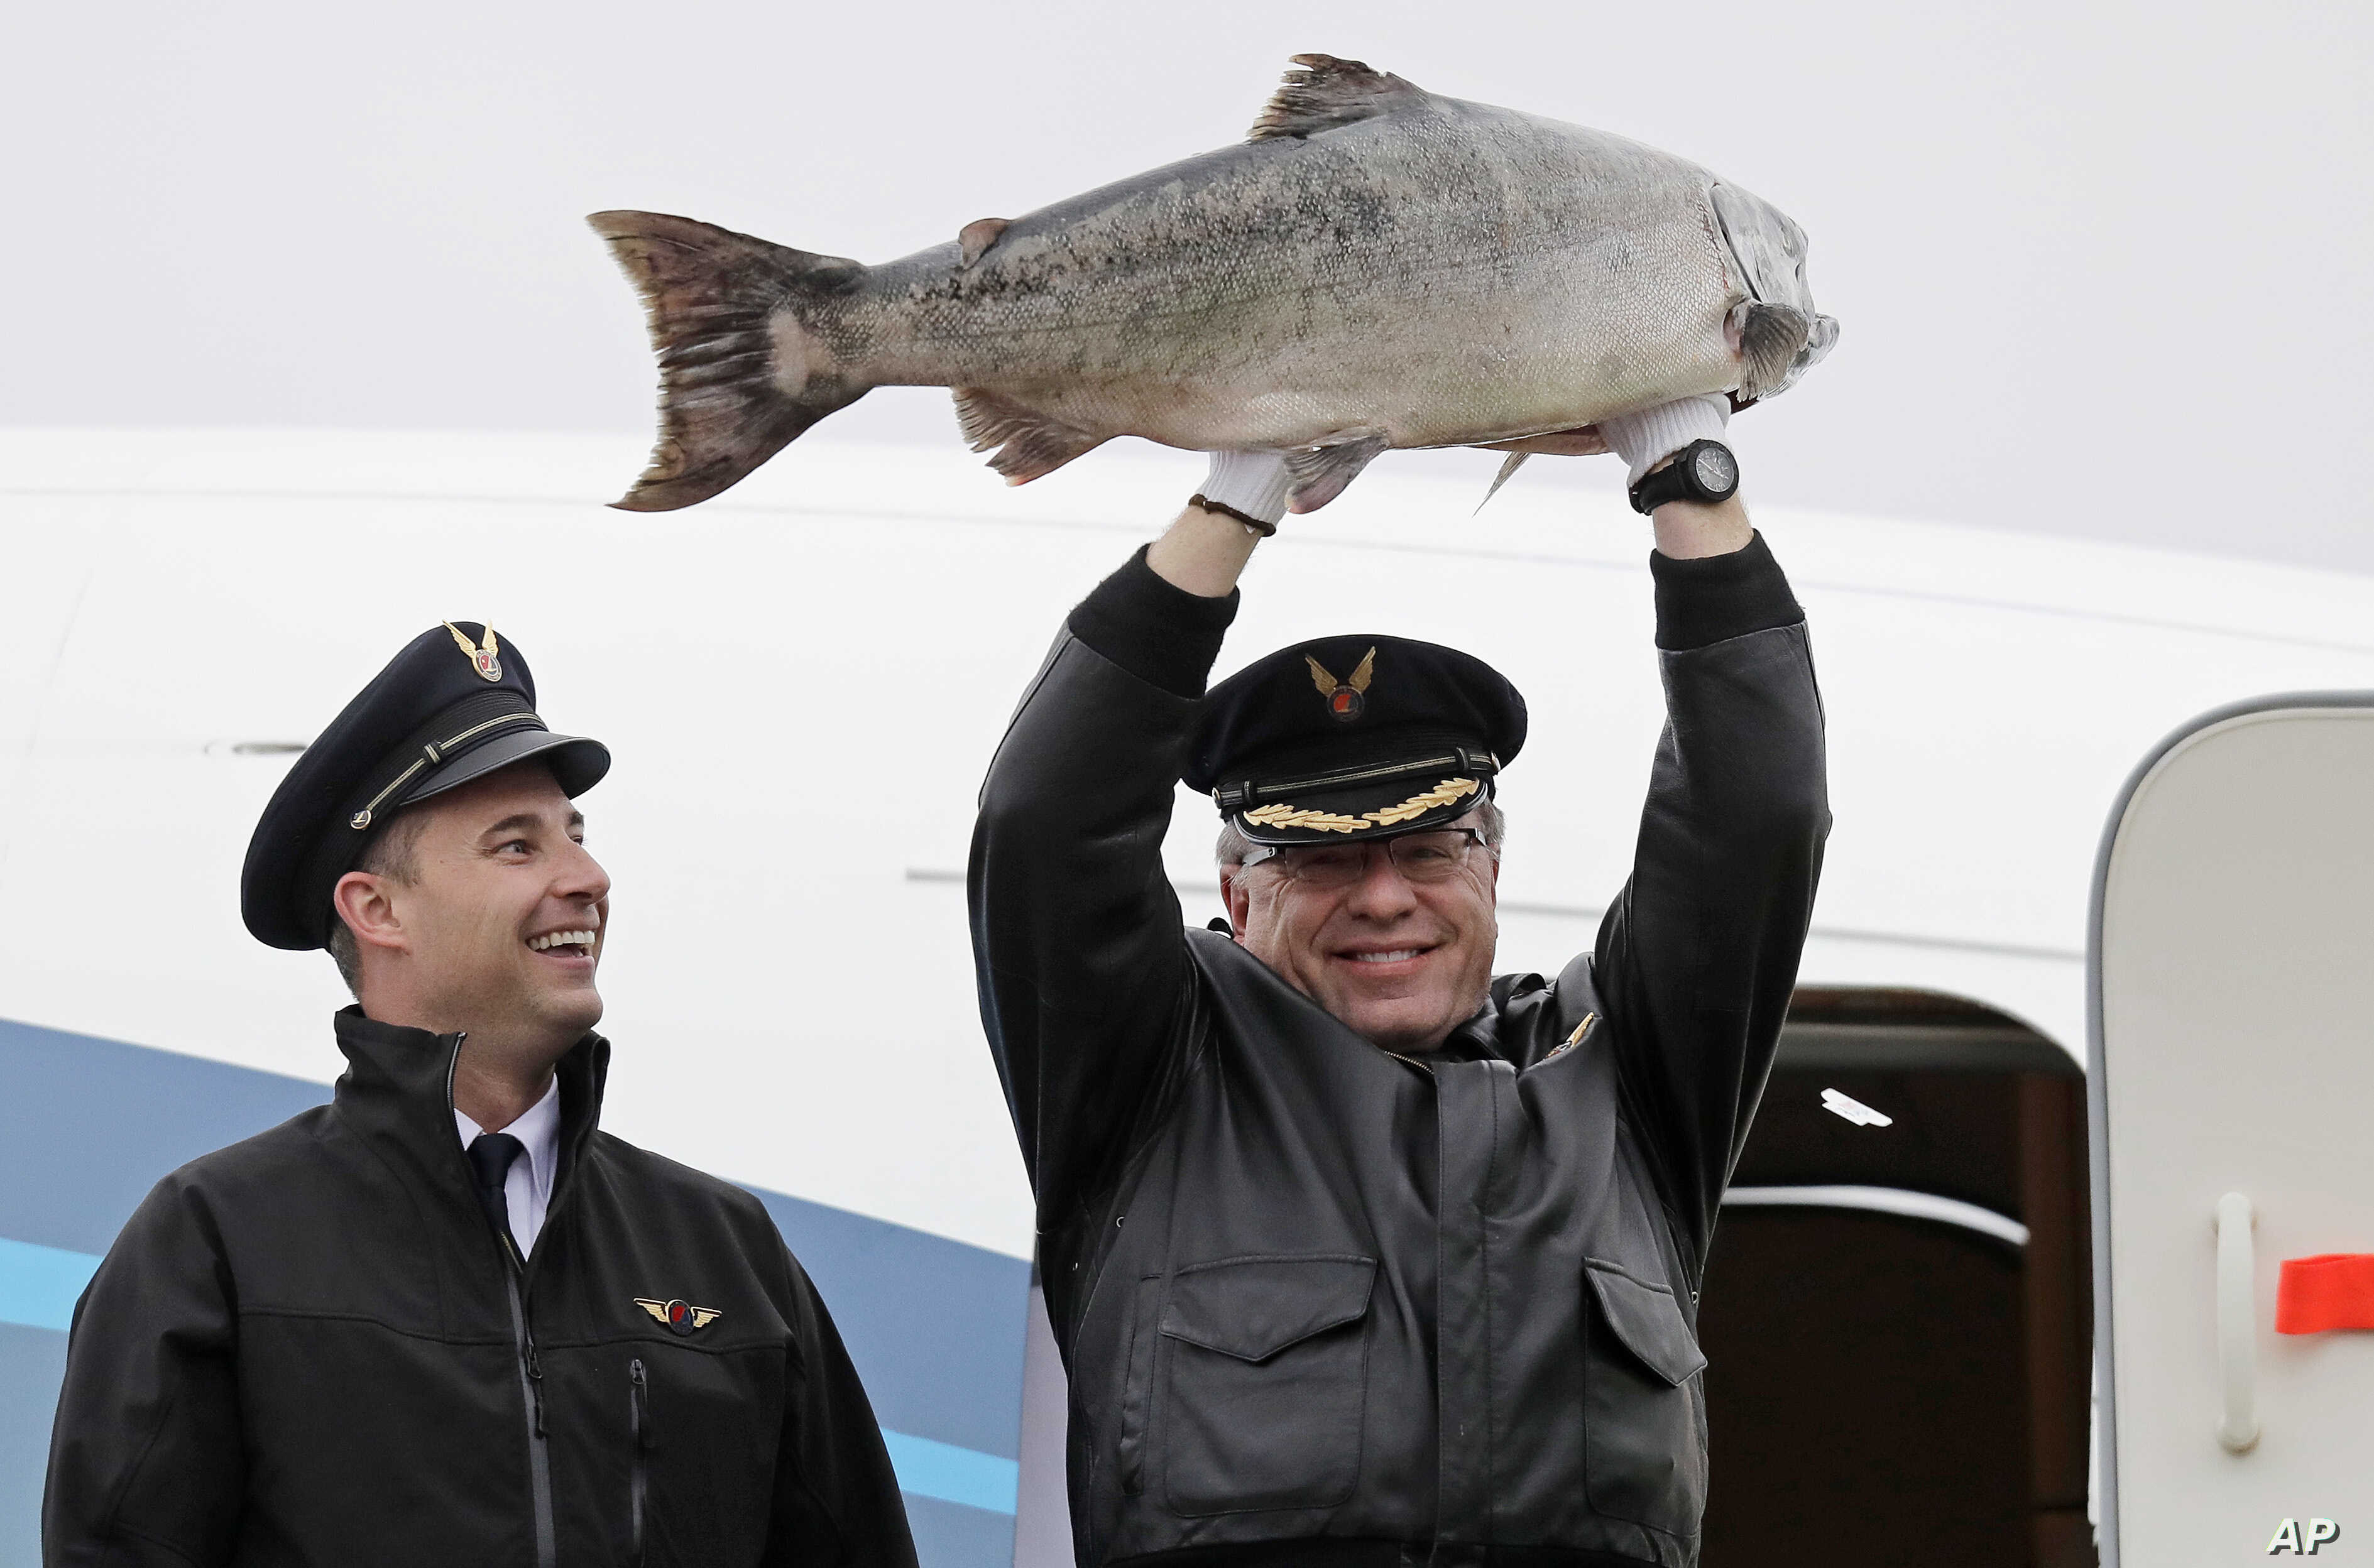 Captain Michael Adams holds up a large Copper River king salmon as he stands with first officer Bob Hood in the doorway an Alaska Airlines 737 airplane, May 18, 2018, at Seattle-Tacoma International Airport in Seattle. The plane was carrying thousand...